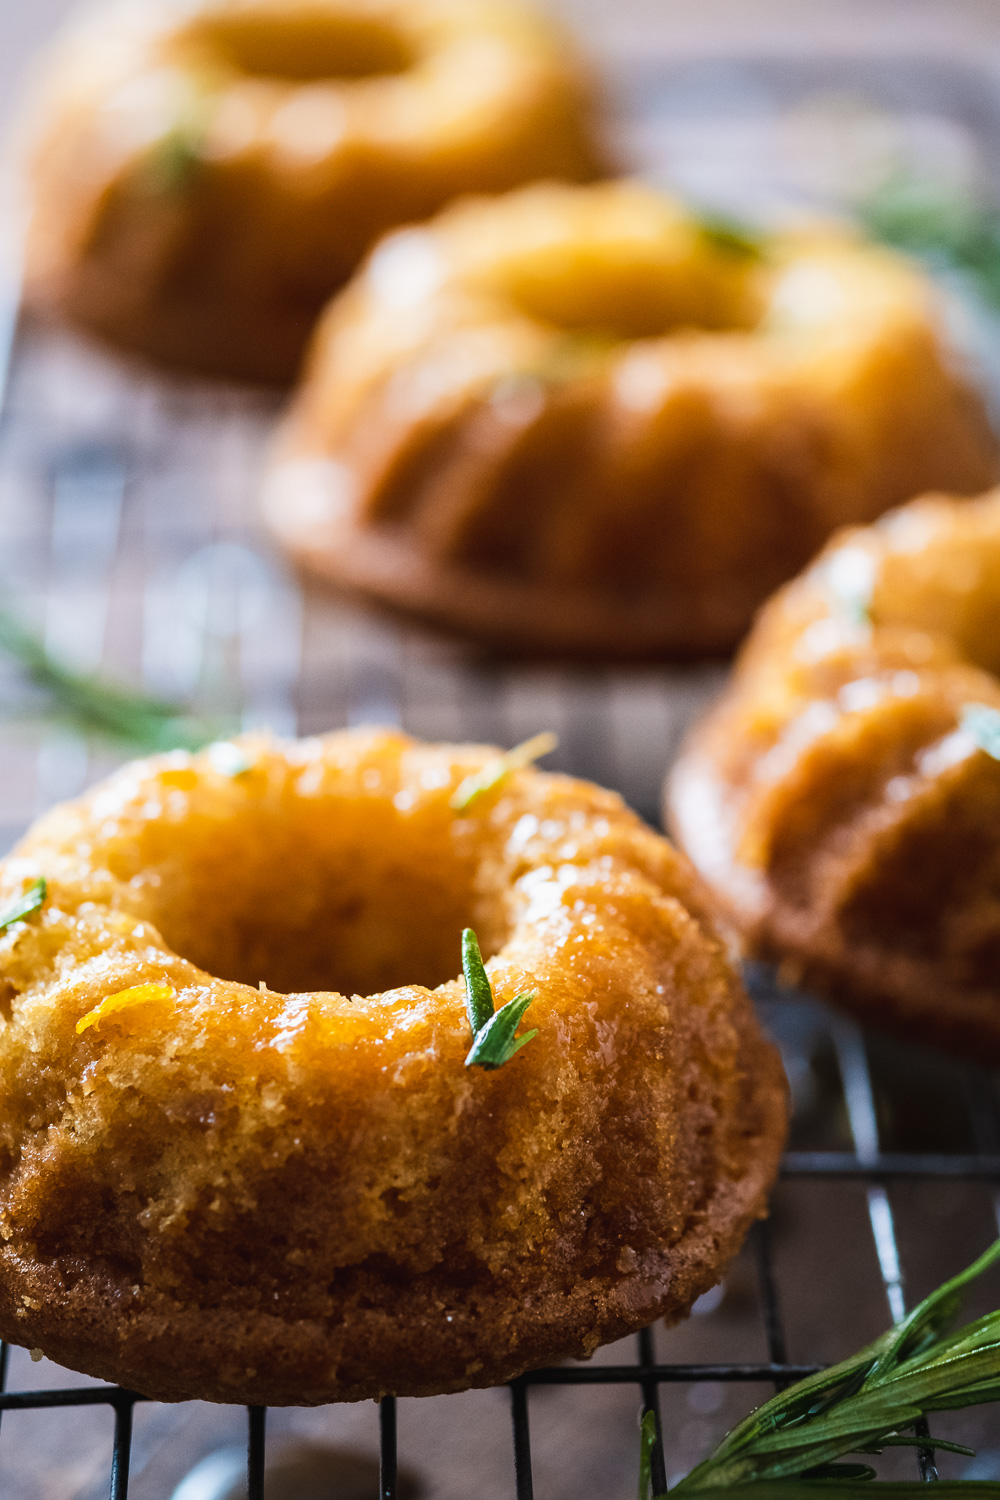 Orange_and_Rosemary_Bundt_Cake-1.jpg